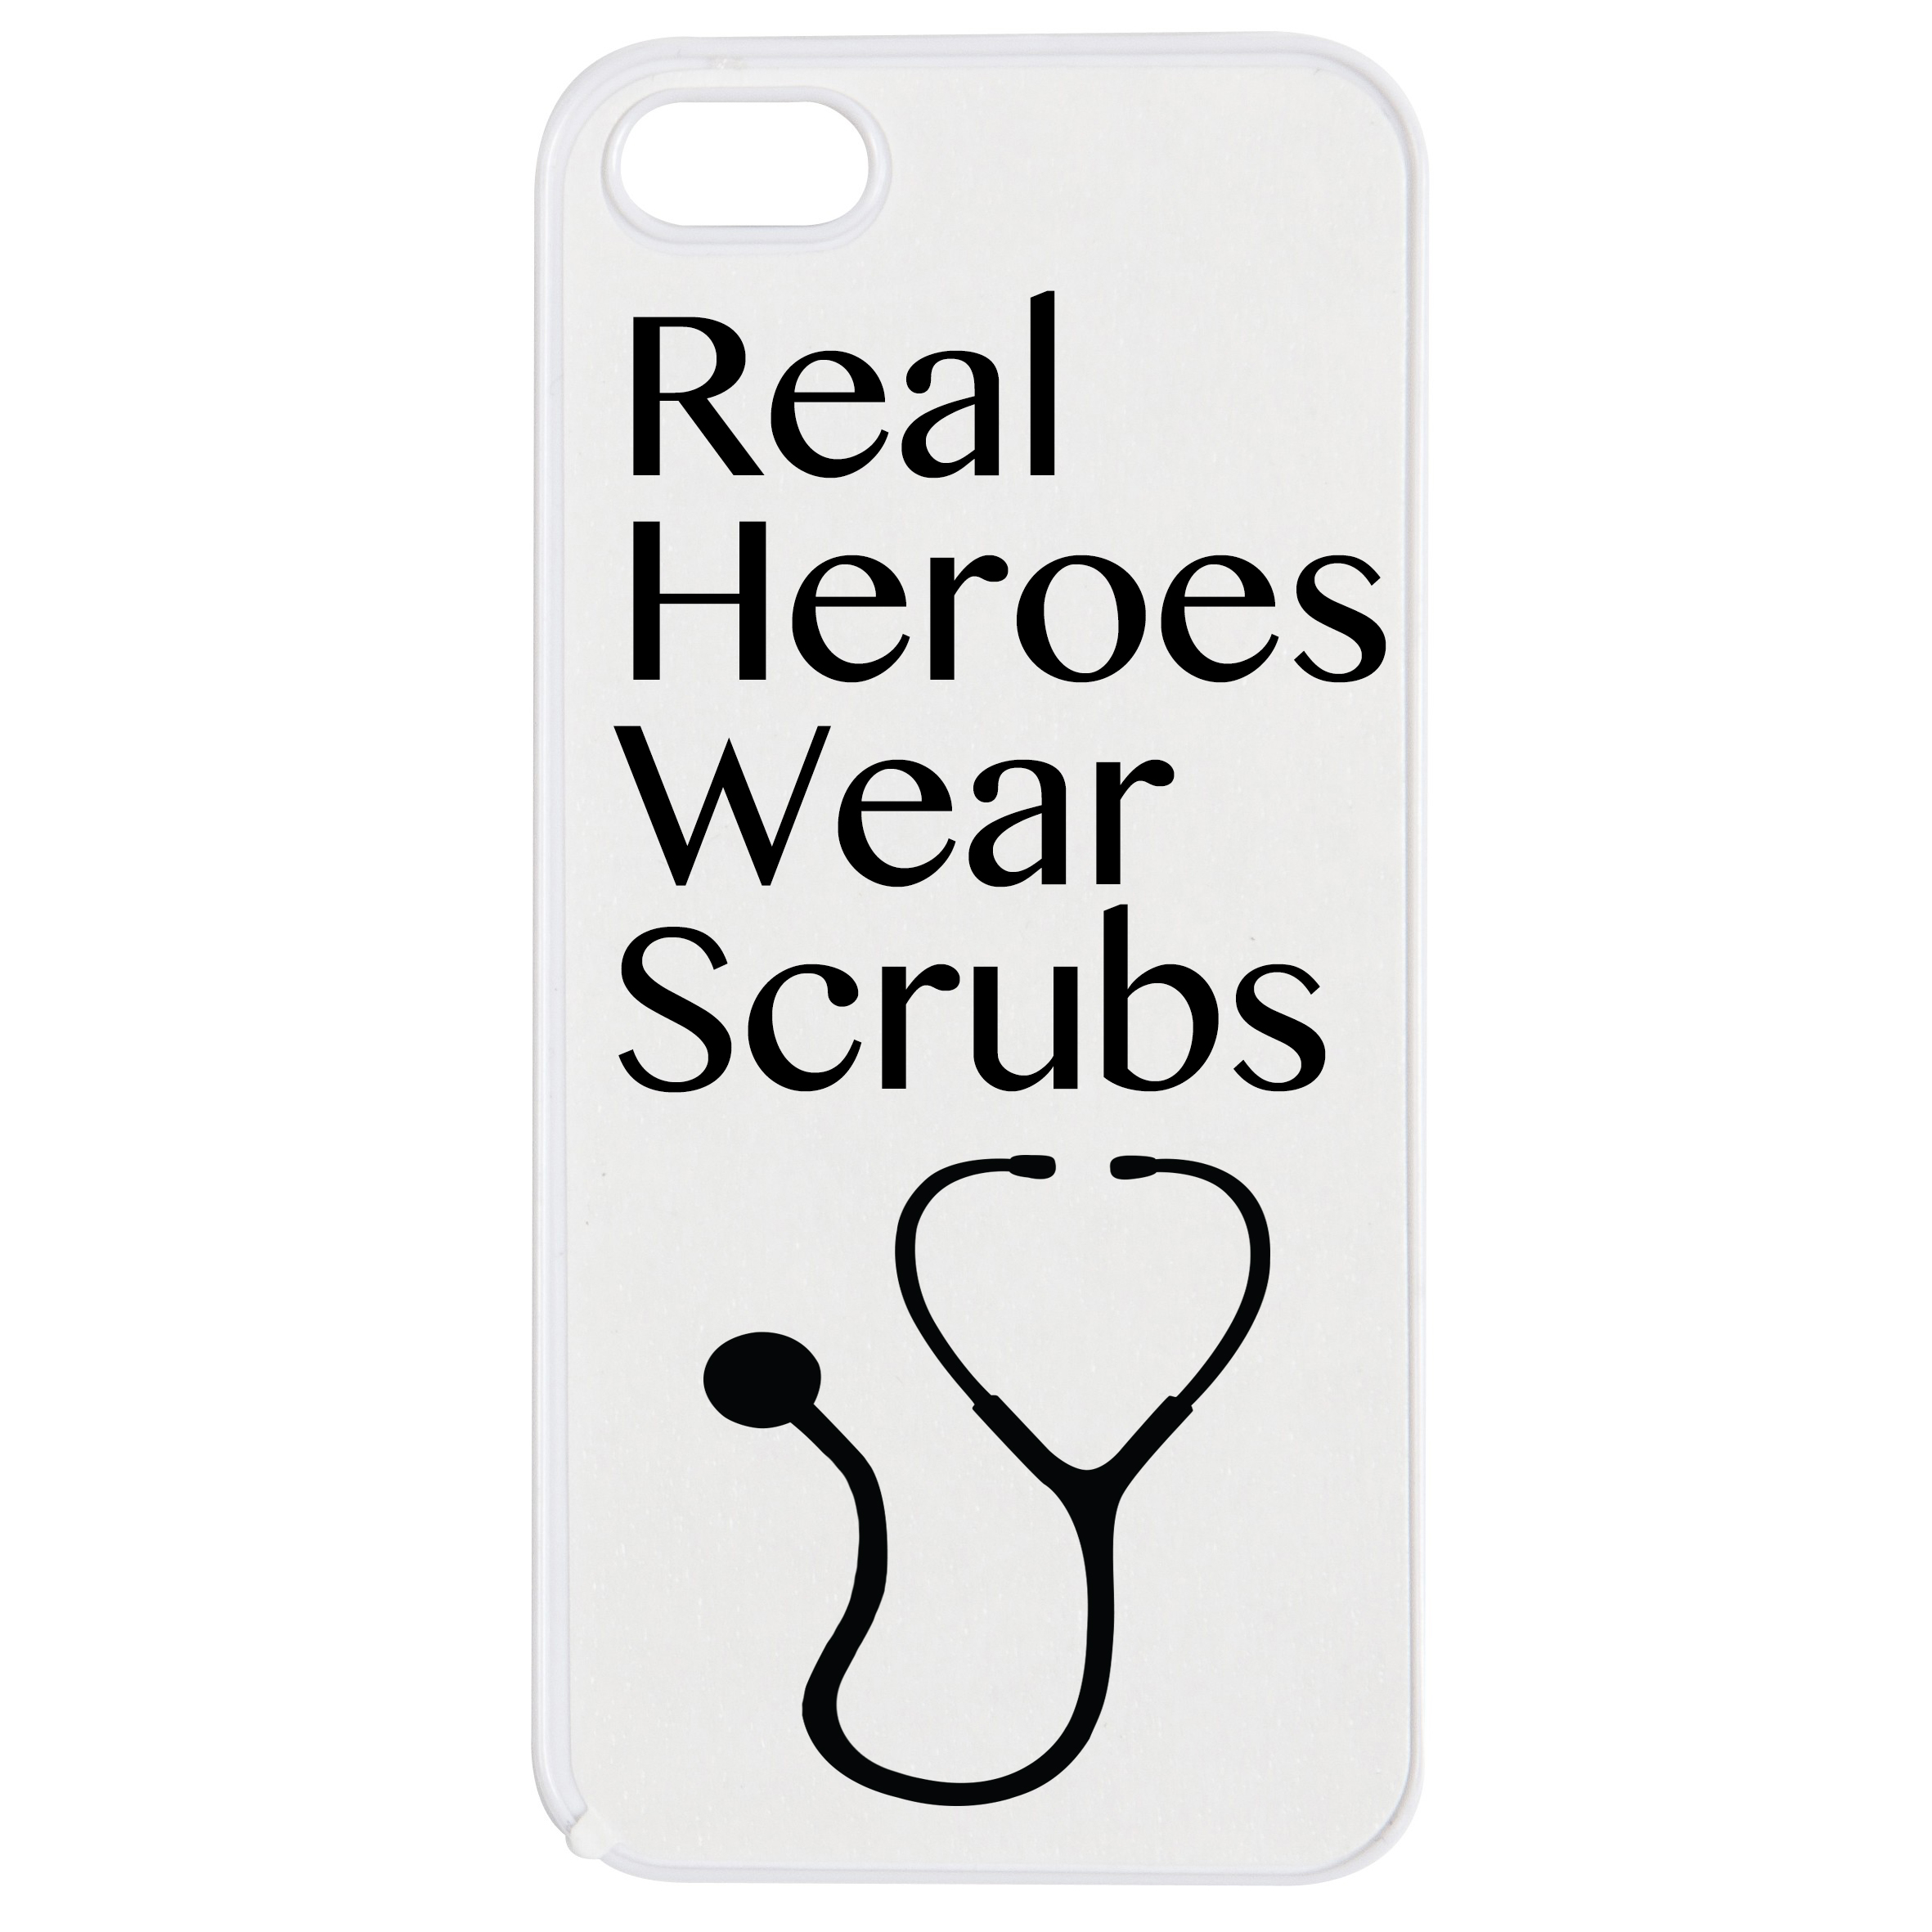 Real Heroes wear scrubs iPhone phone case